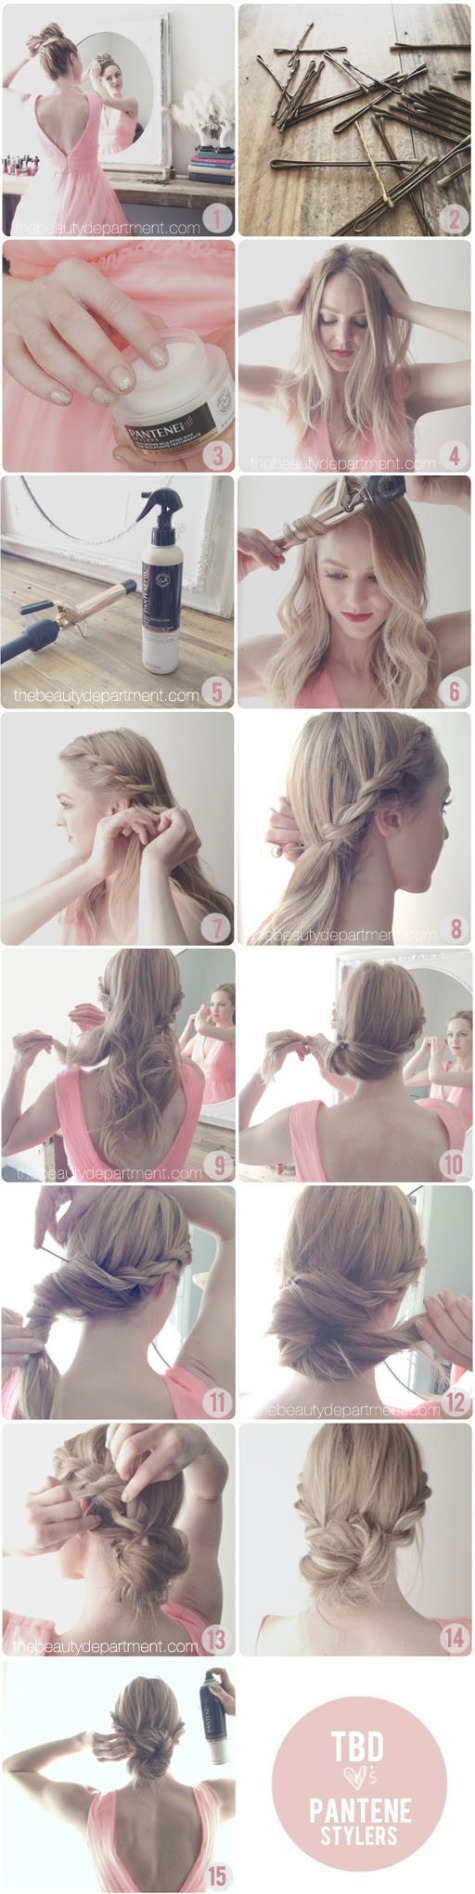 Outstanding 22 Amazing Braid Hairstyle Tutorials Hairstyles 2016 Trendy Hairstyle Inspiration Daily Dogsangcom